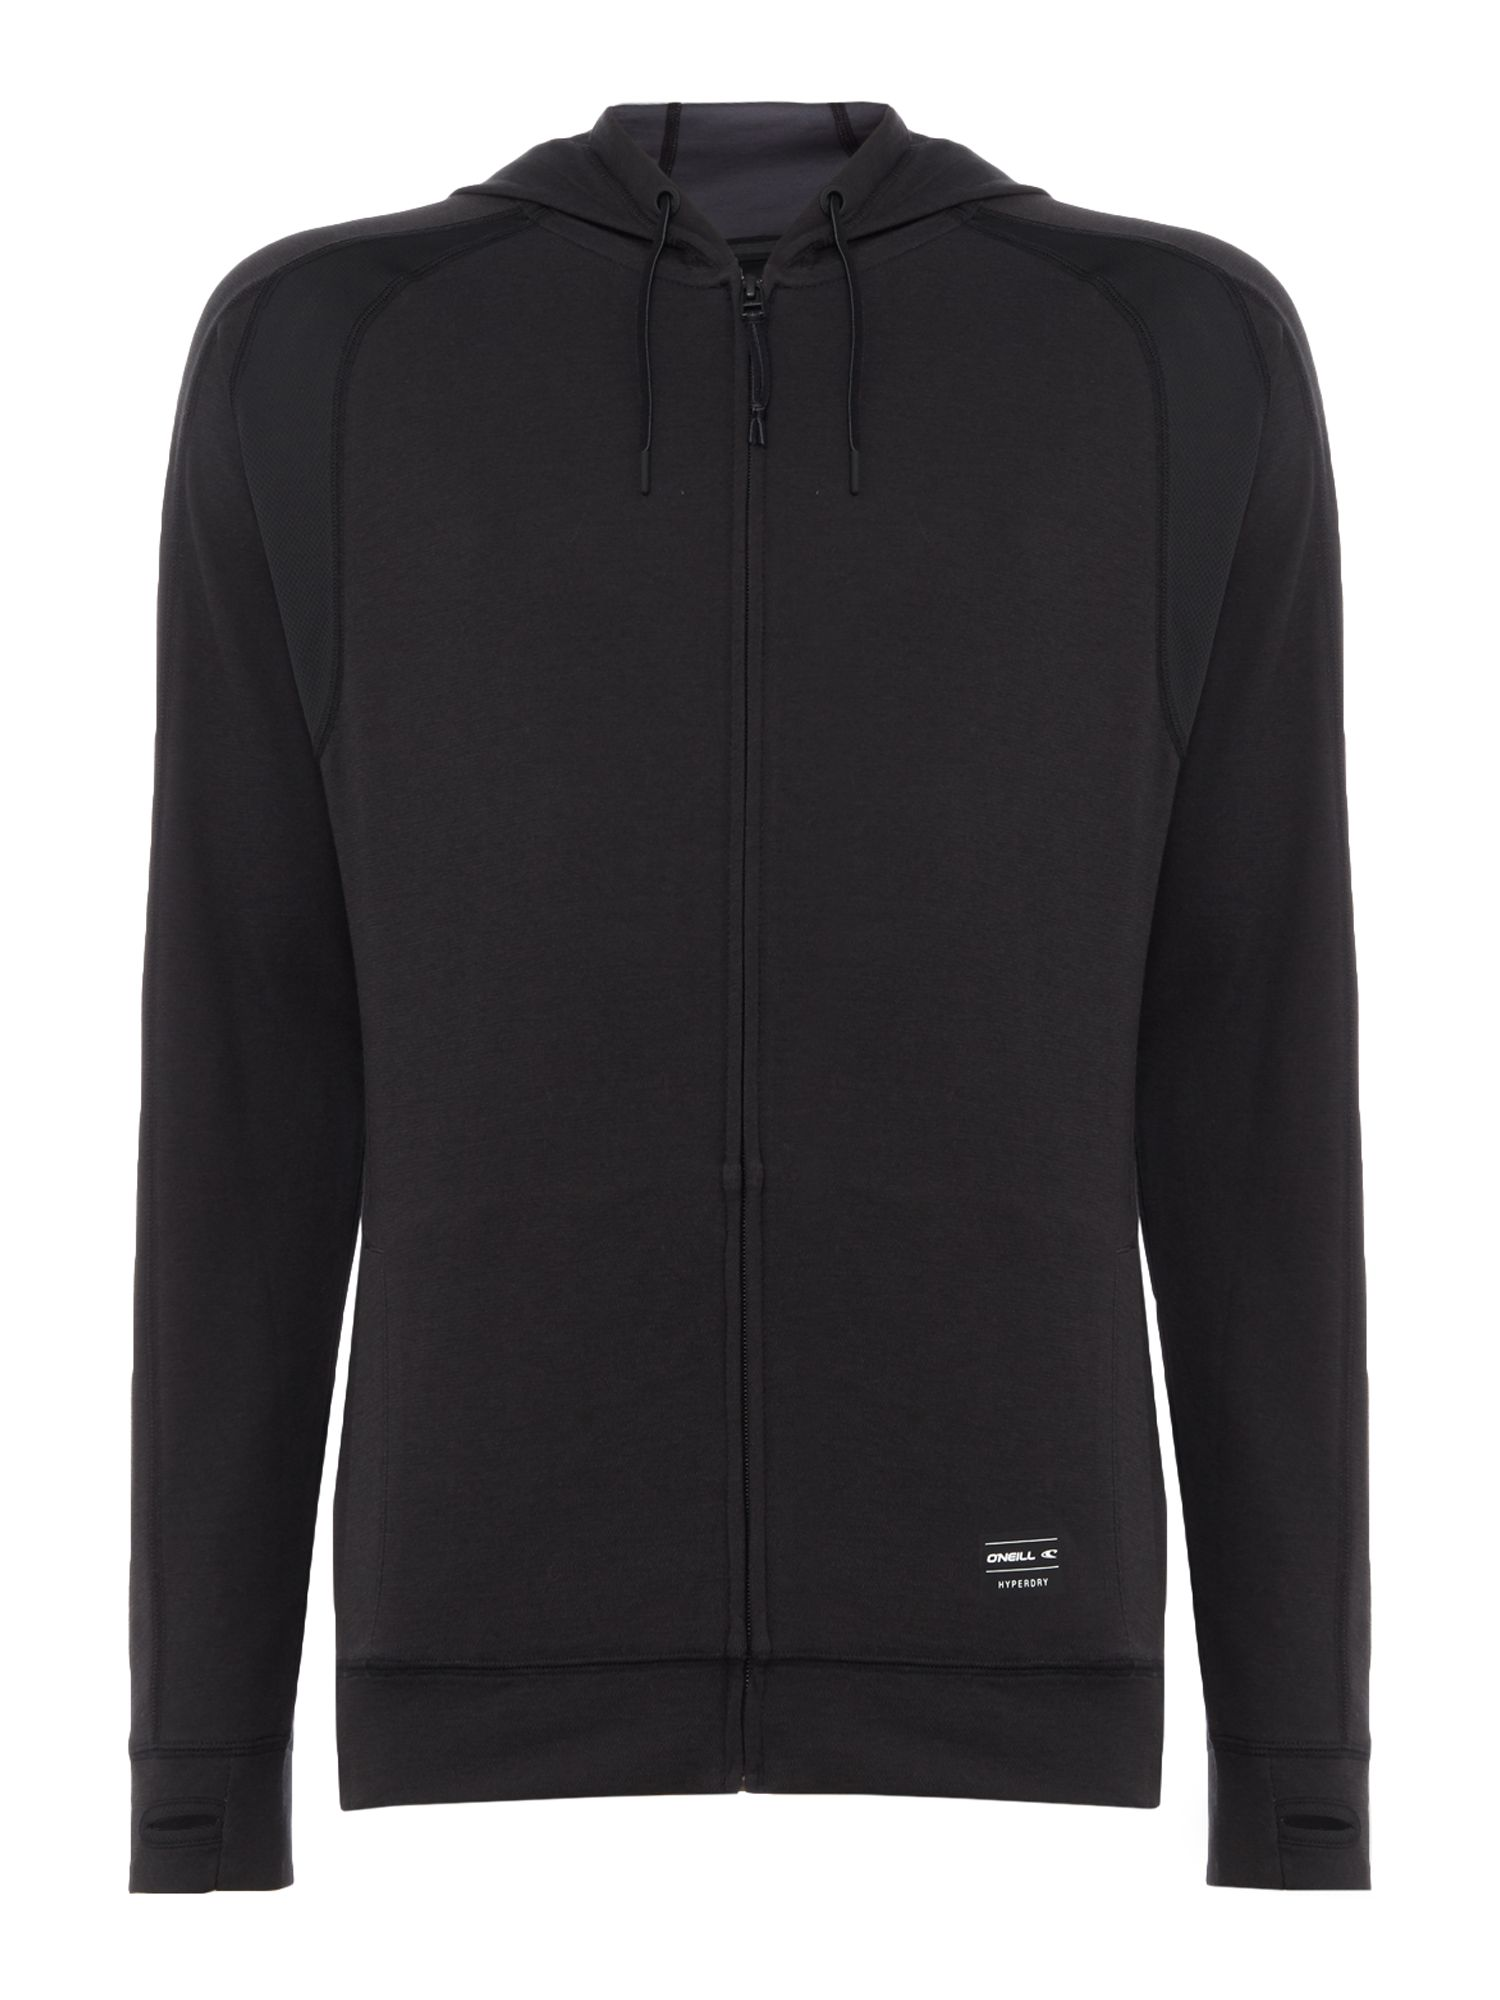 Men's O'Neill Force hoodie, Black